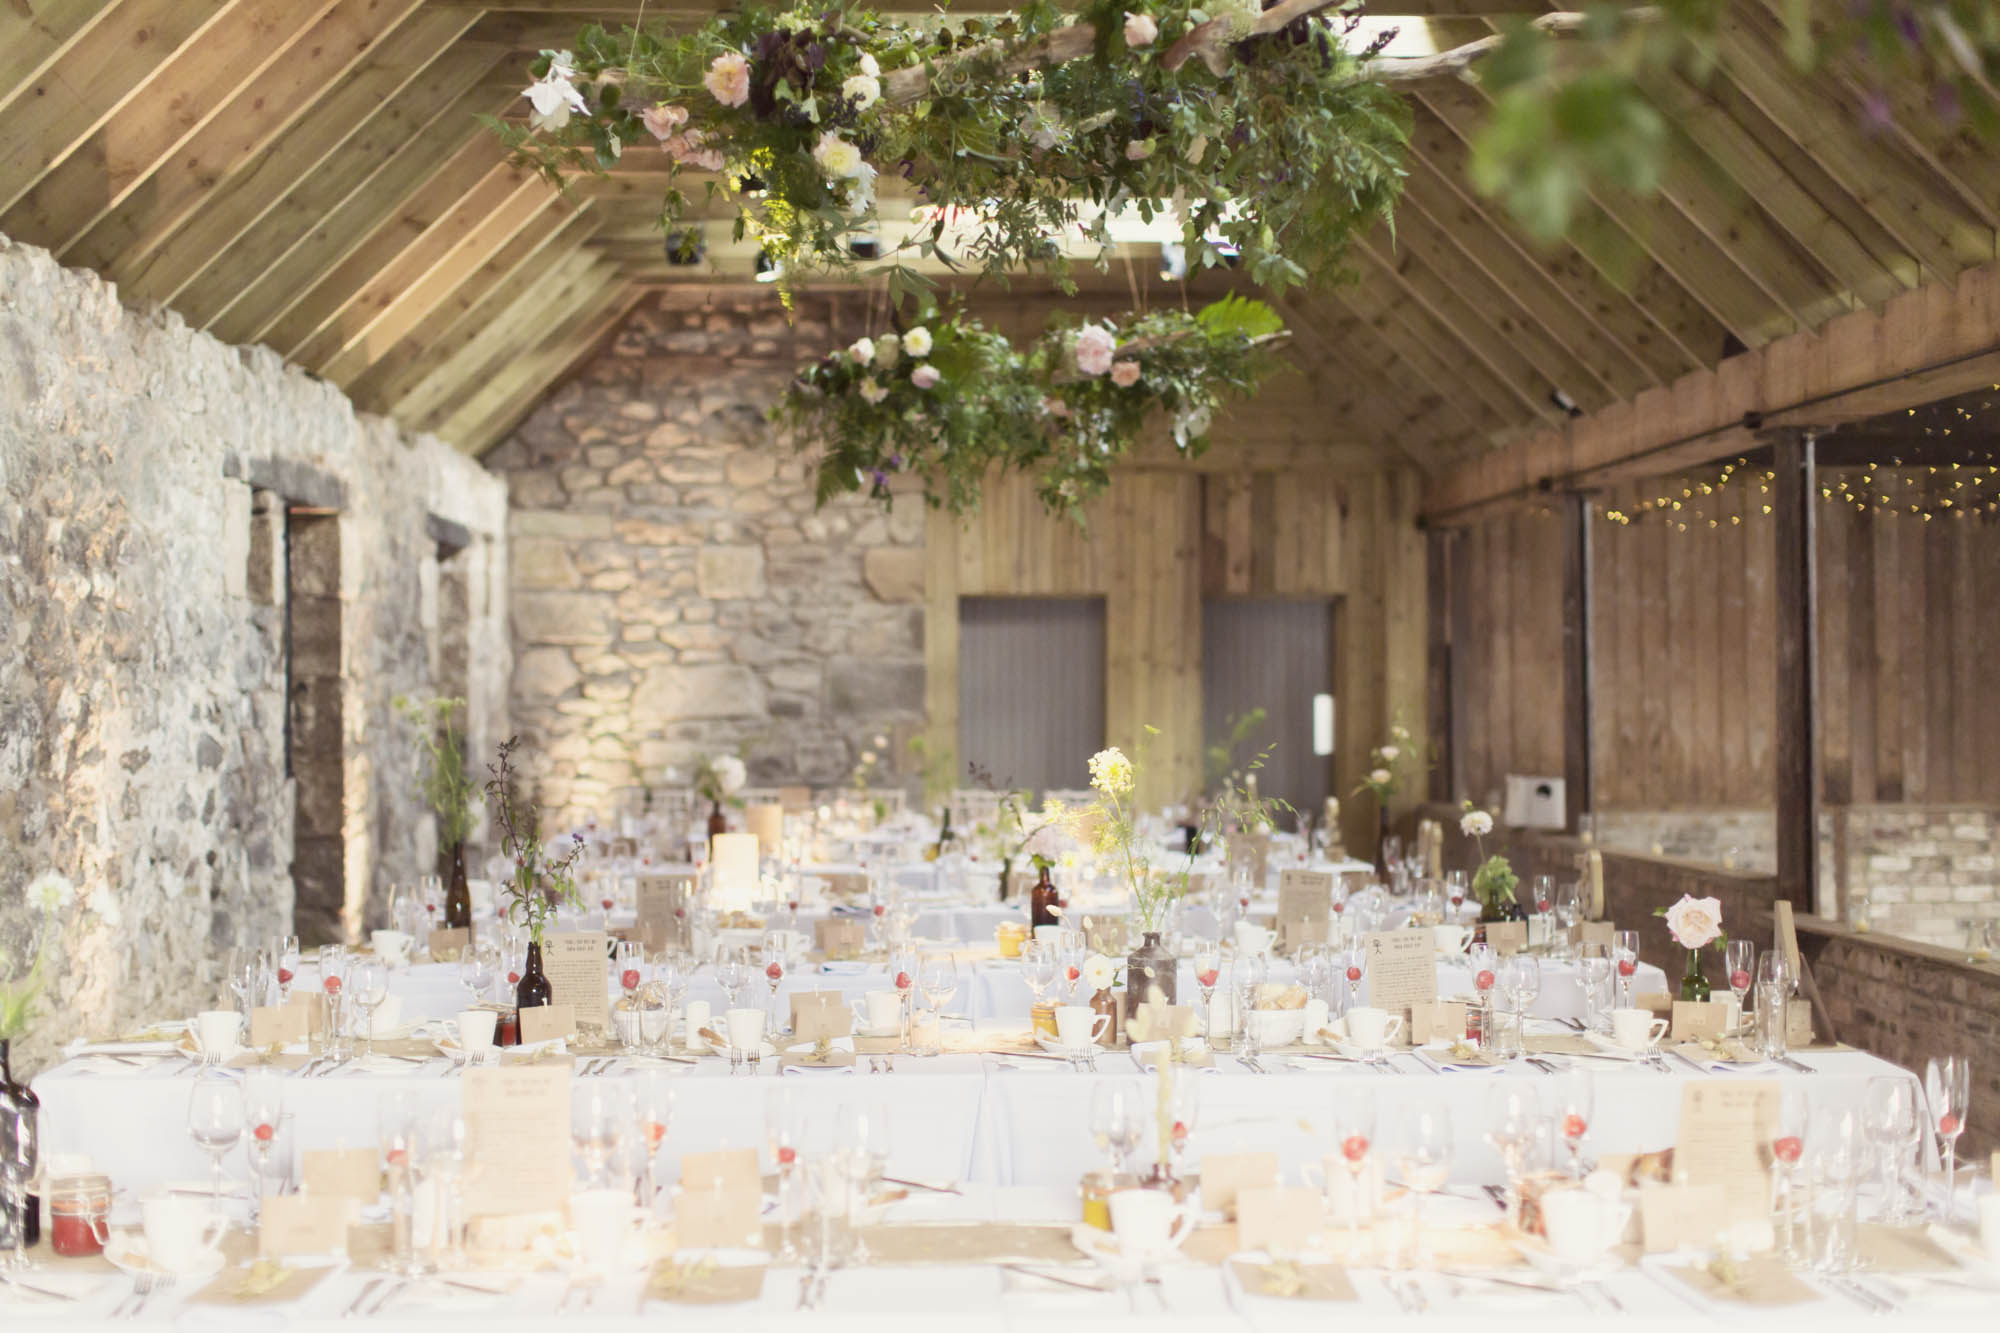 Wedding Barn Scotland  The Byre at Inchyra Perthshire  home